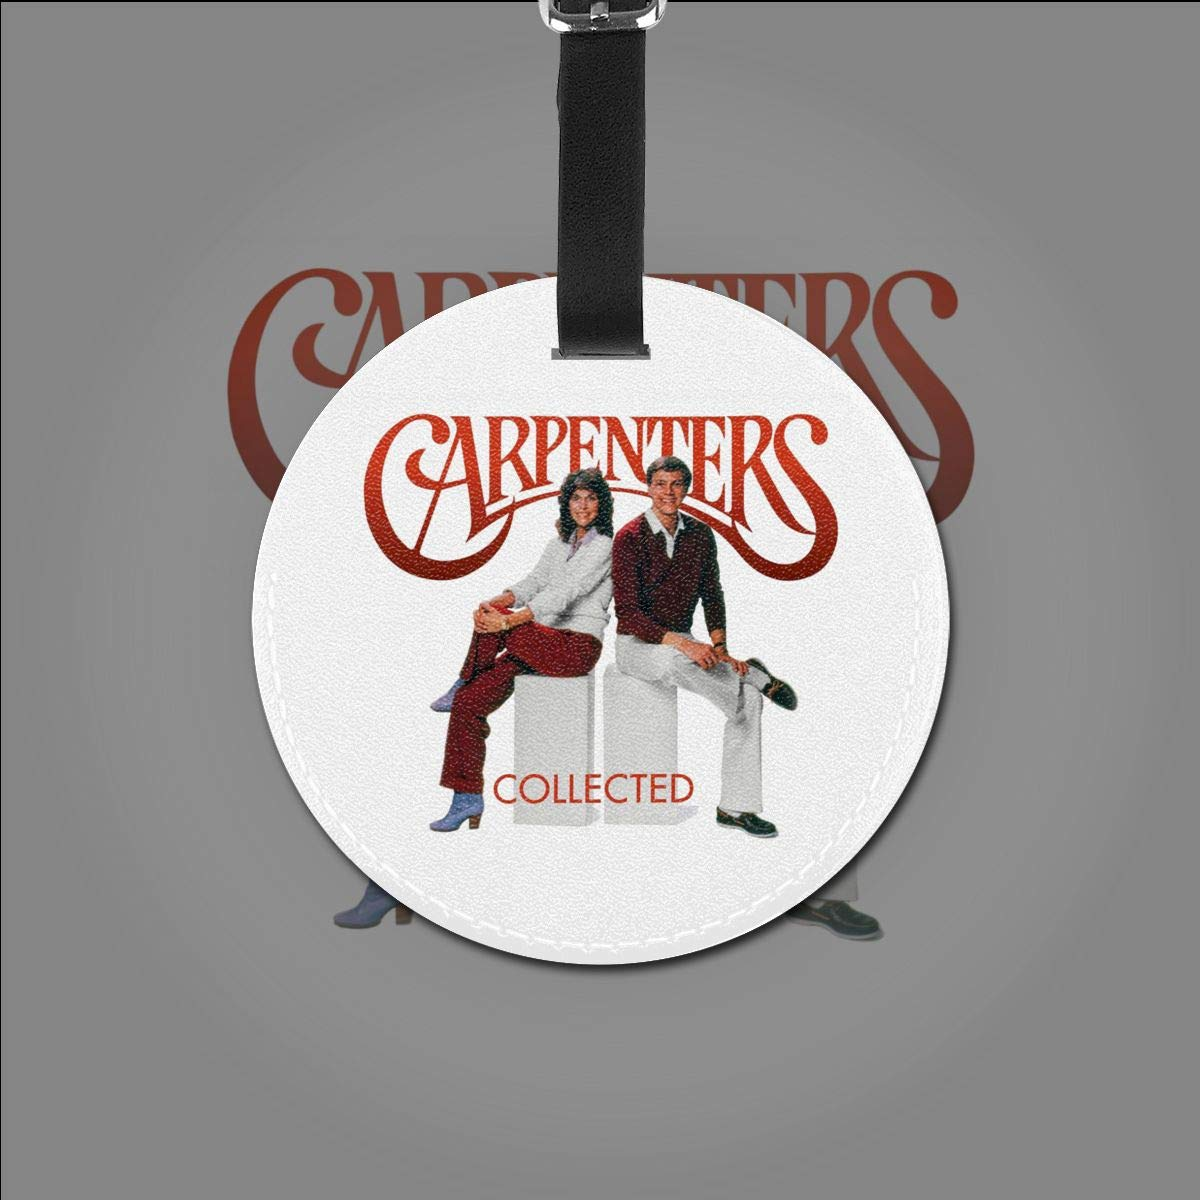 Carpenters Travel Leather Round Luggage Tags Suitcase Labels Bag